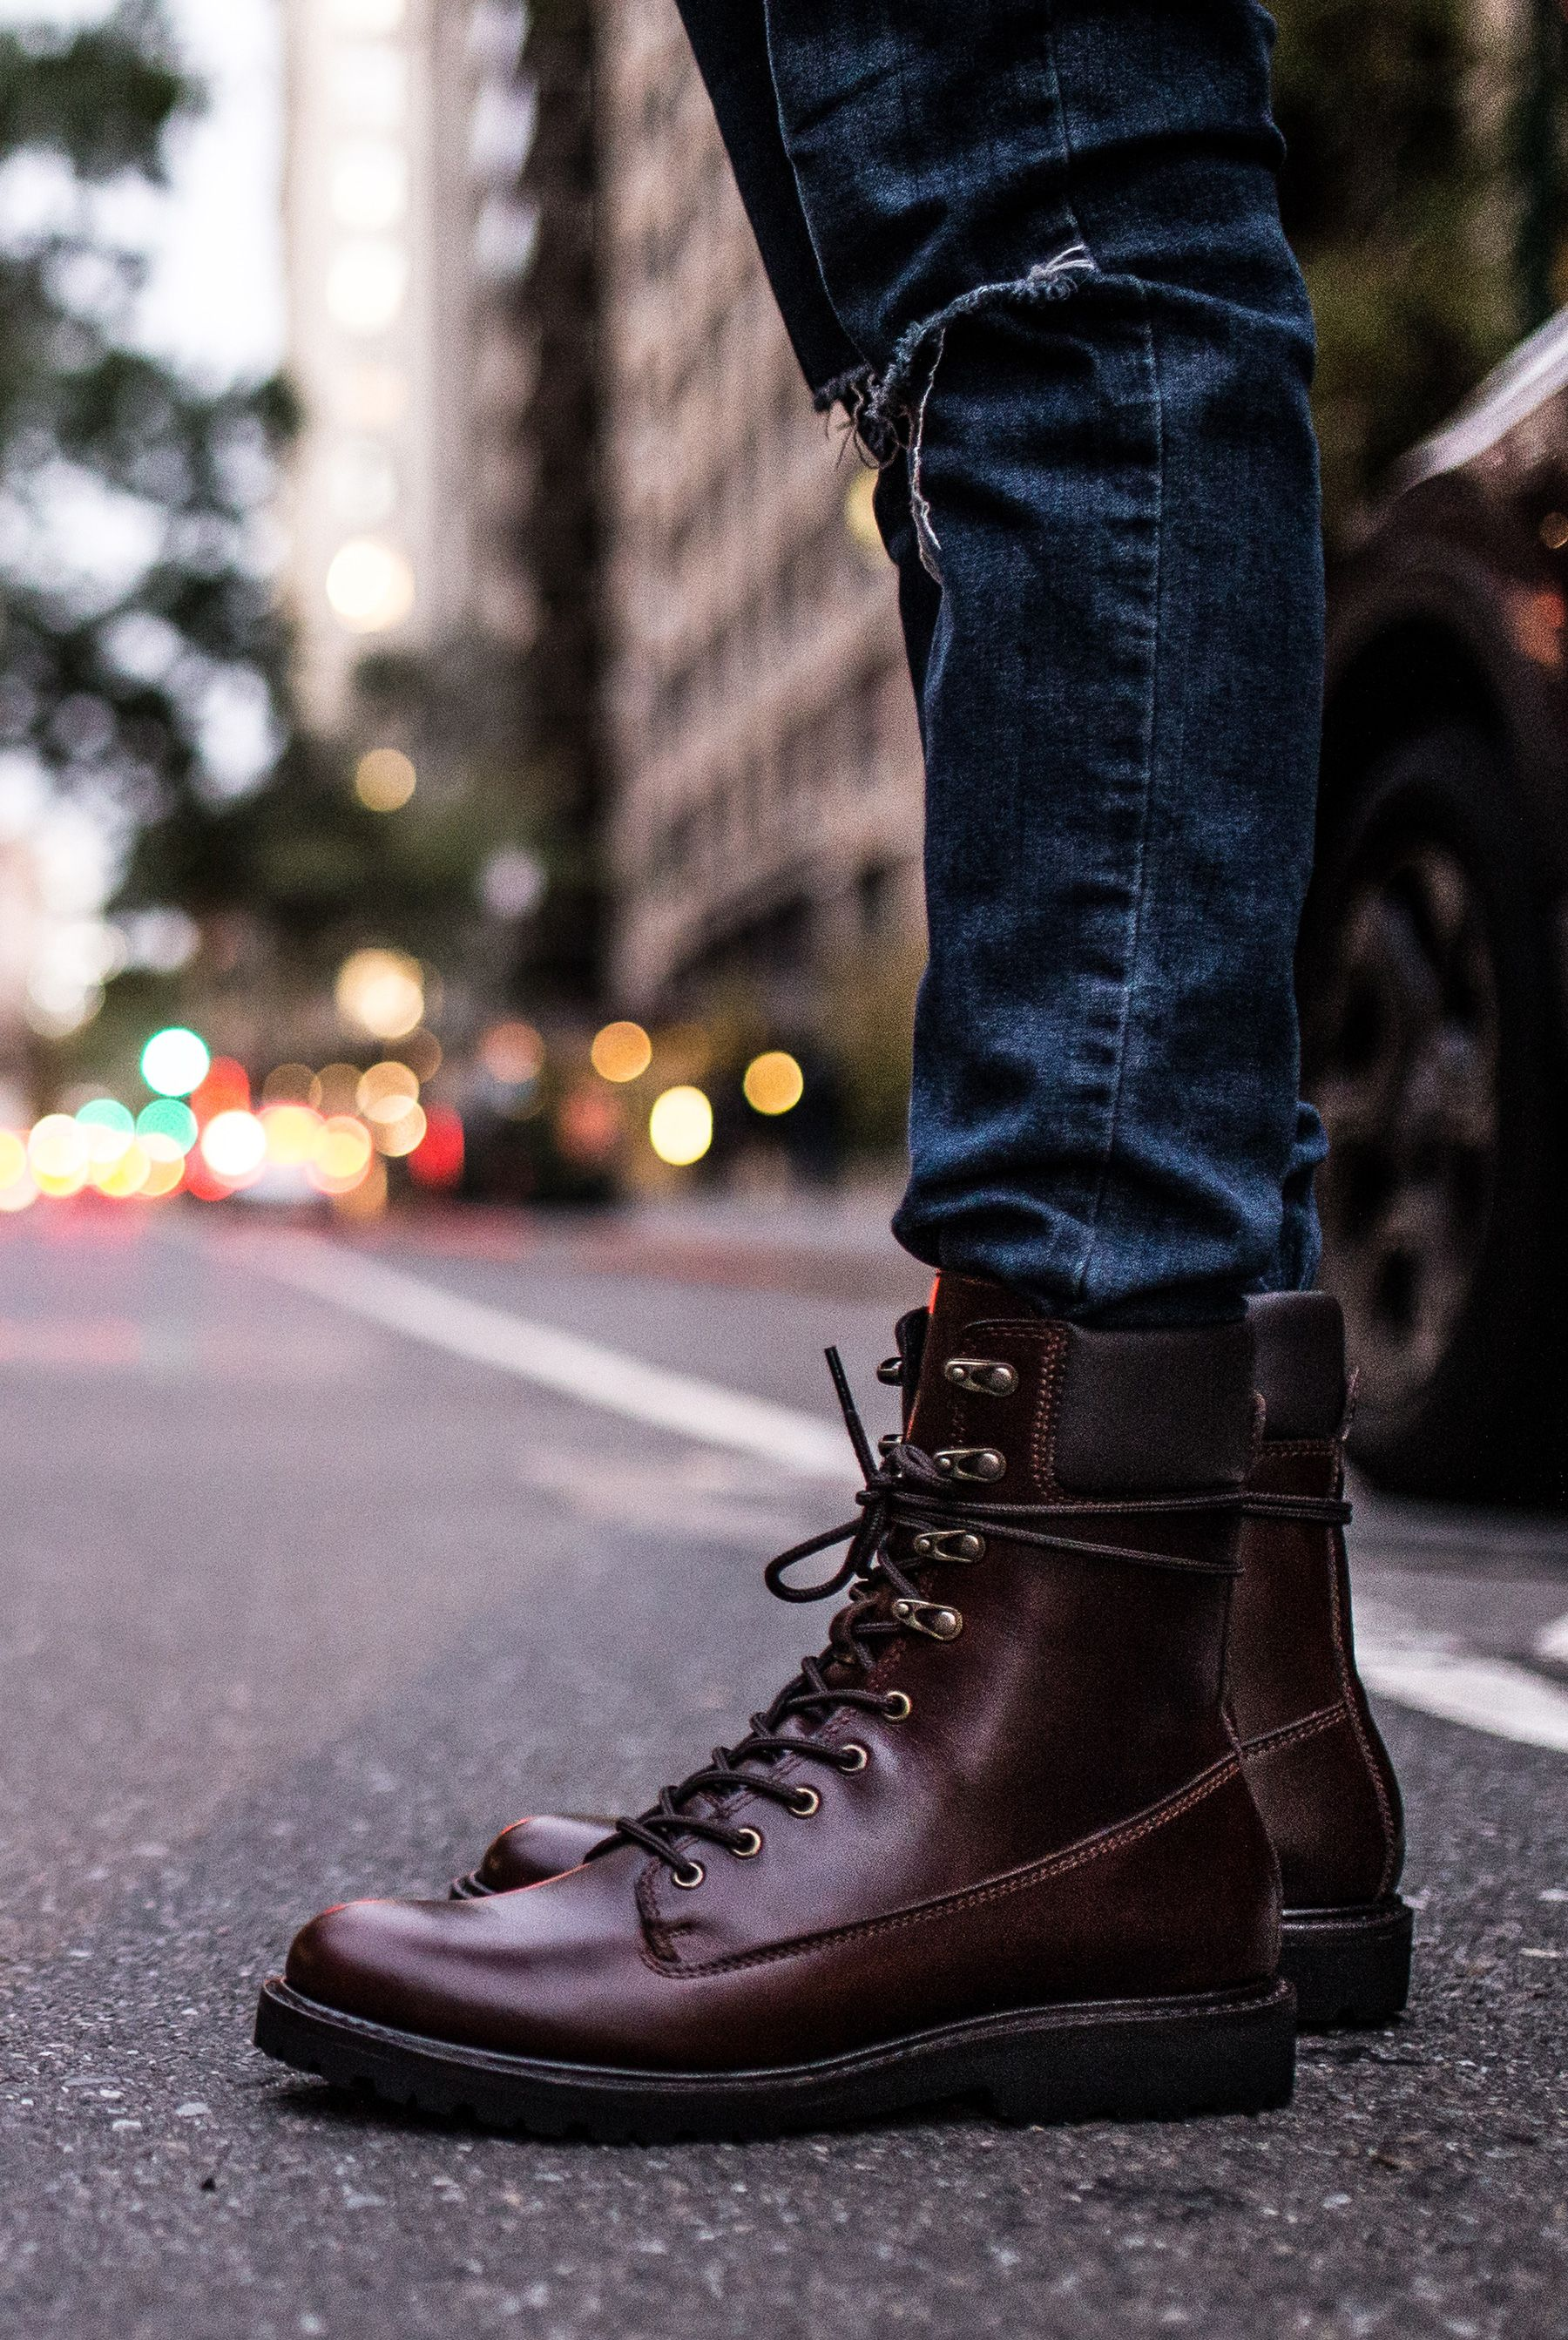 Pin on Men's and Women's Boots Thursday Boot Company